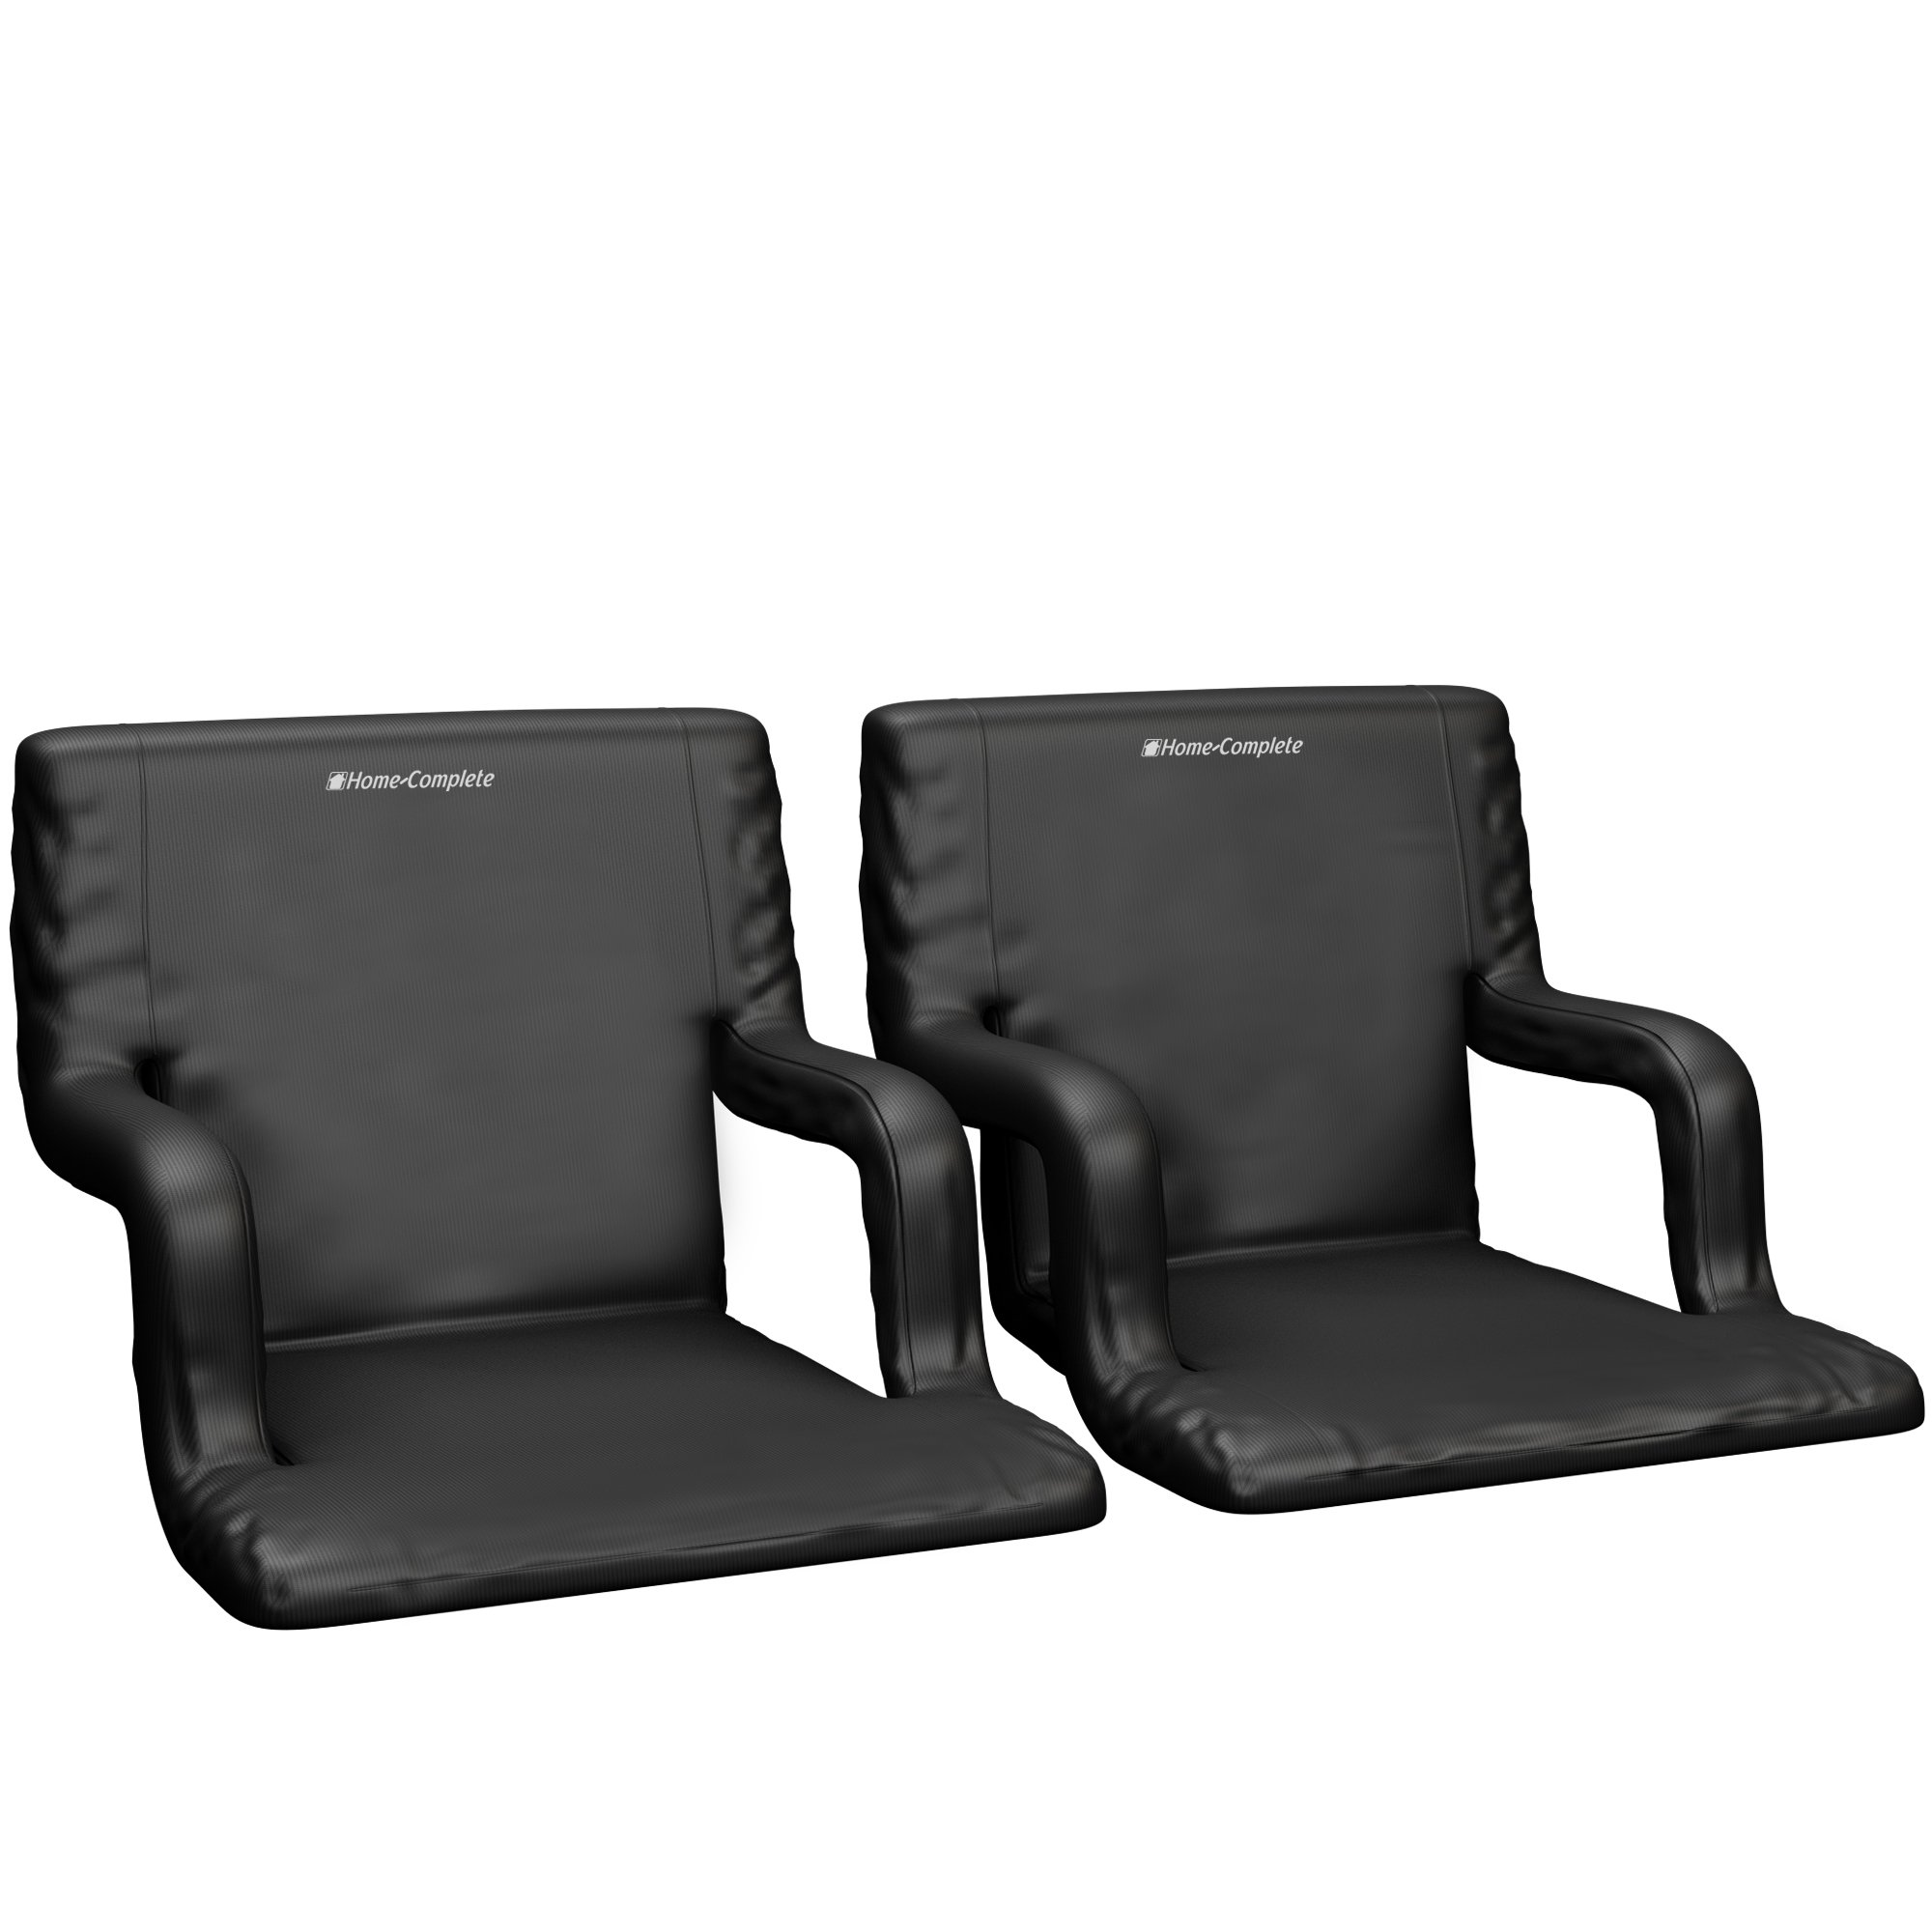 Home-Complete Wide Stadium Seats Chairs for Bleachers or Benches - Enjoy Extra Padded Cushion Backs and Armrests - 6 Reclining Custom Fit Sport Positions - Portable Easy to Carry Straps - Set of 2